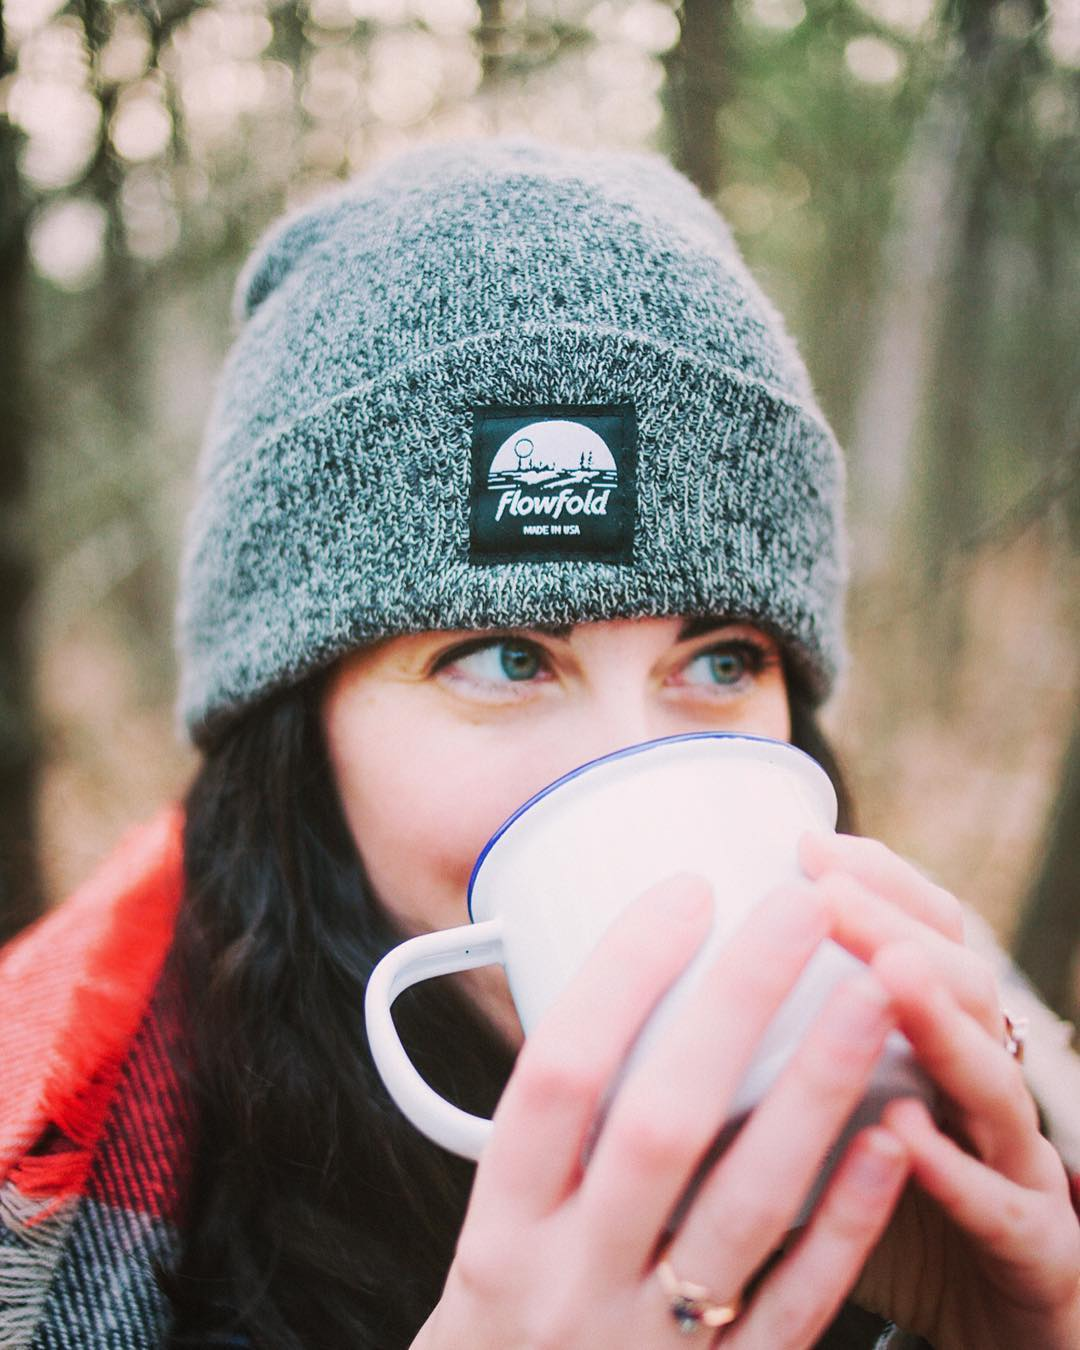 To create the #Flowfold Island Icon beanie, we meticulously studied the science of cozy. We have determined that wearing this warm cap feels something like two puppies snuggling in a blanket while sipping a spiced chai latte on your head. #ReallyCozy...